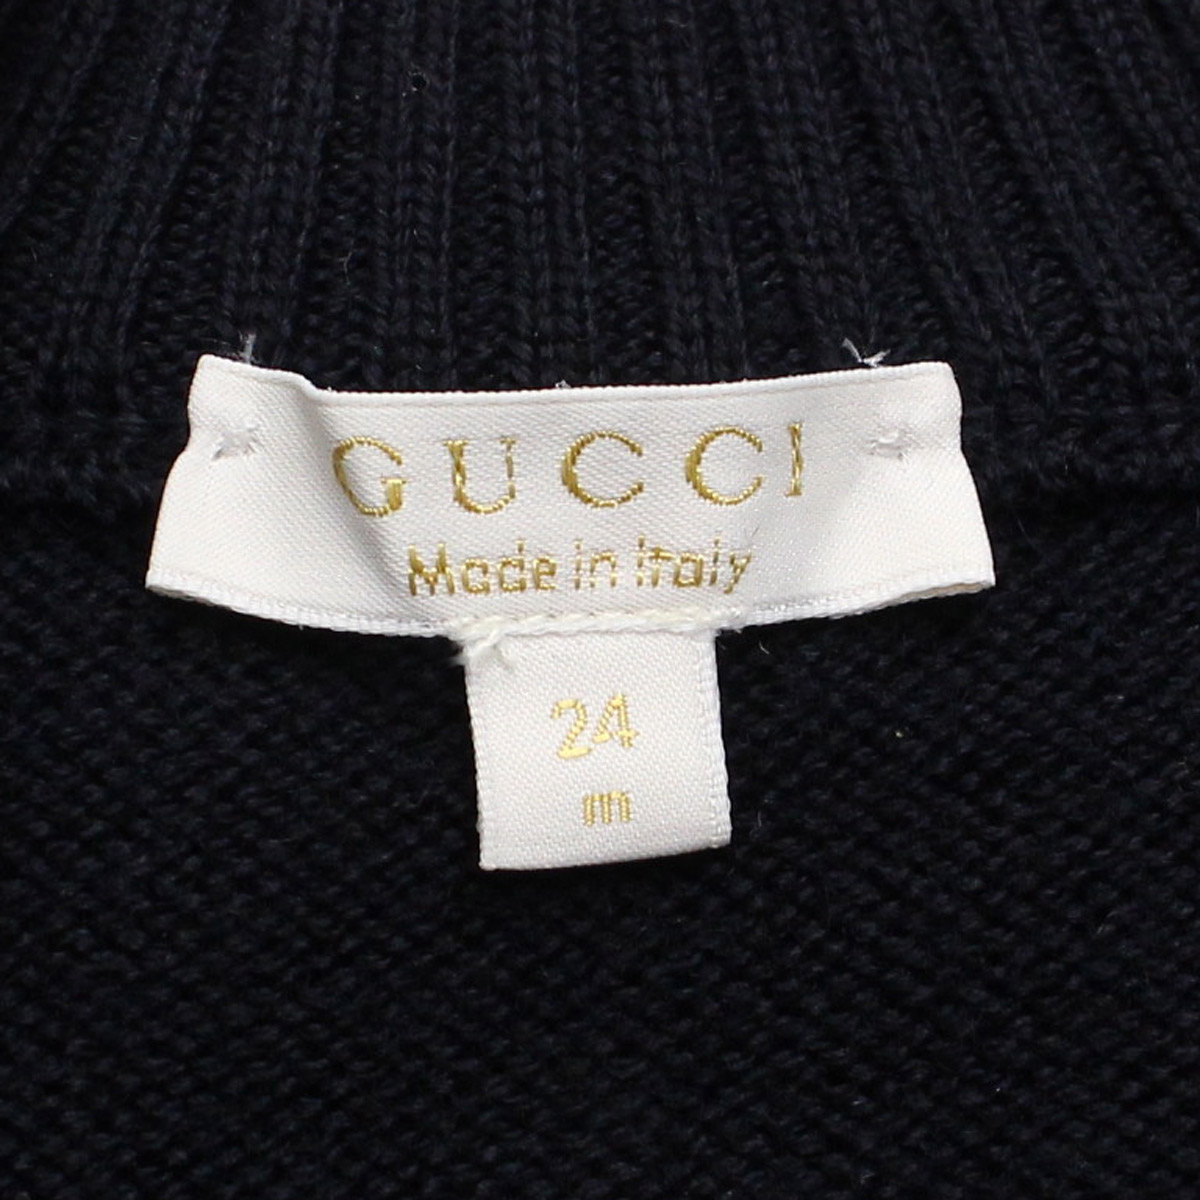 74379d20f91f95 Bighit The total brand wholesale  Gucci (GUCCI) baby tops 387256 ...